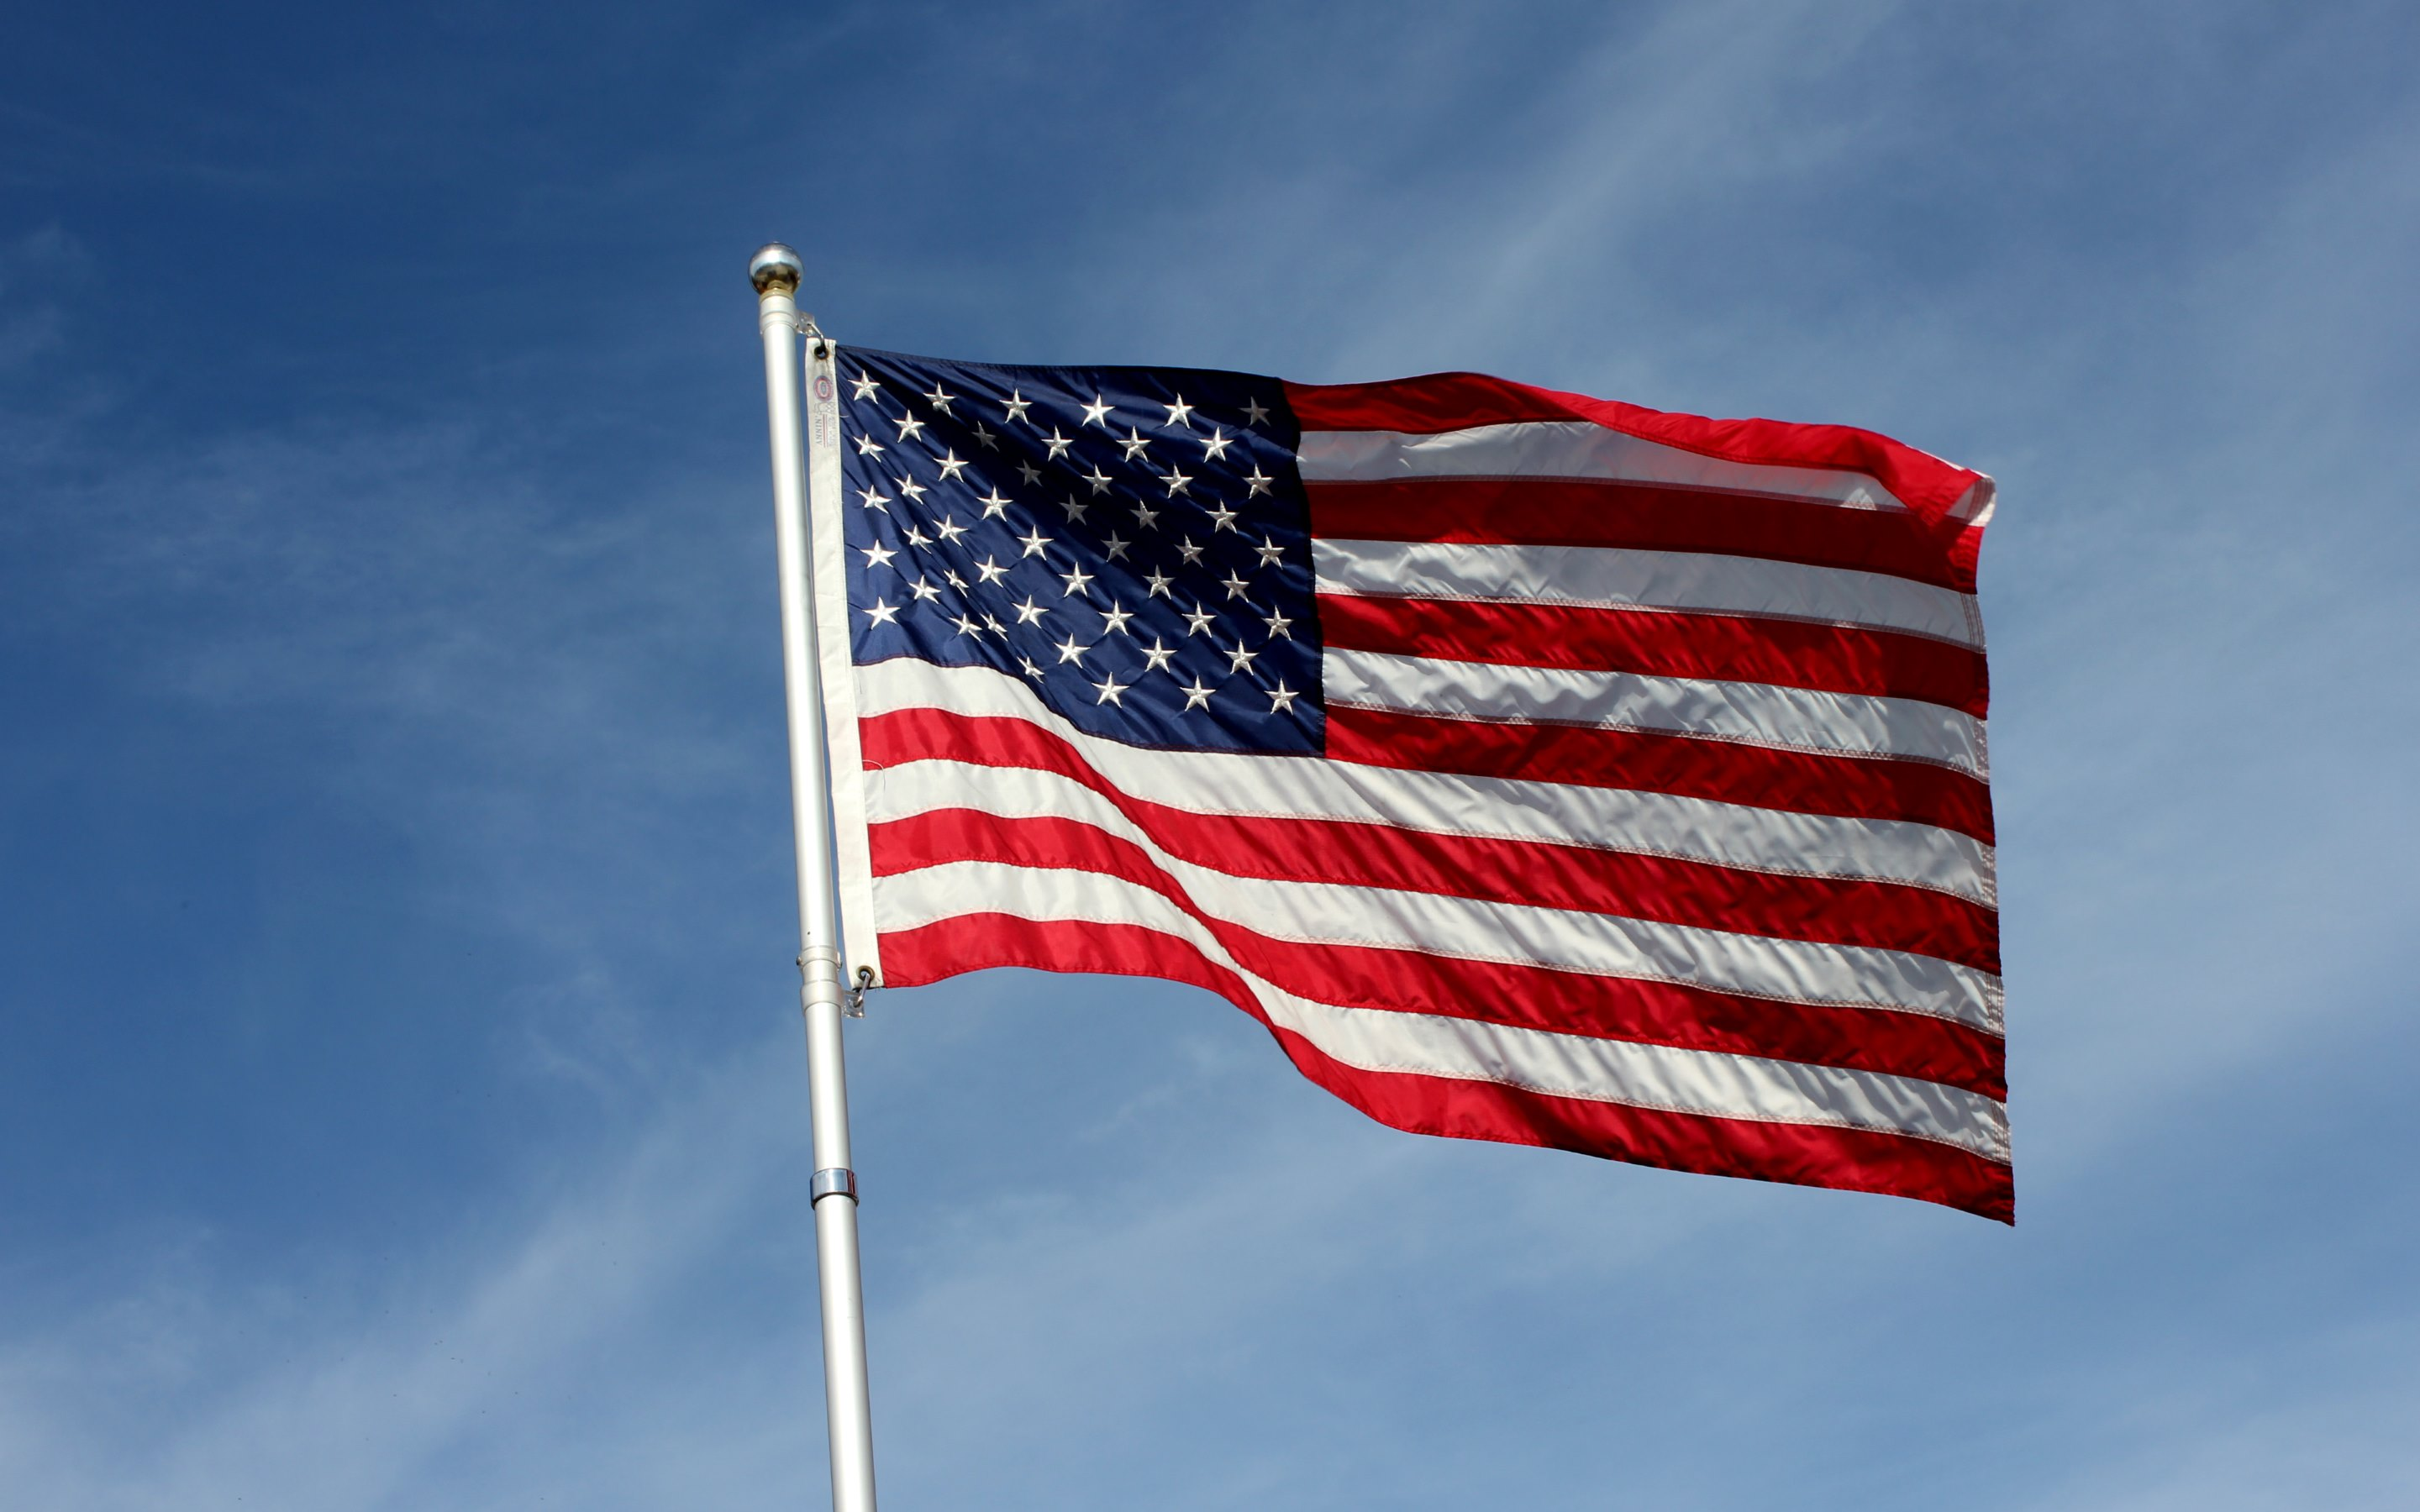 HD Usa Flag Wallpaper Live Usa Flag Wallpapers JY392 WP 2880x1800